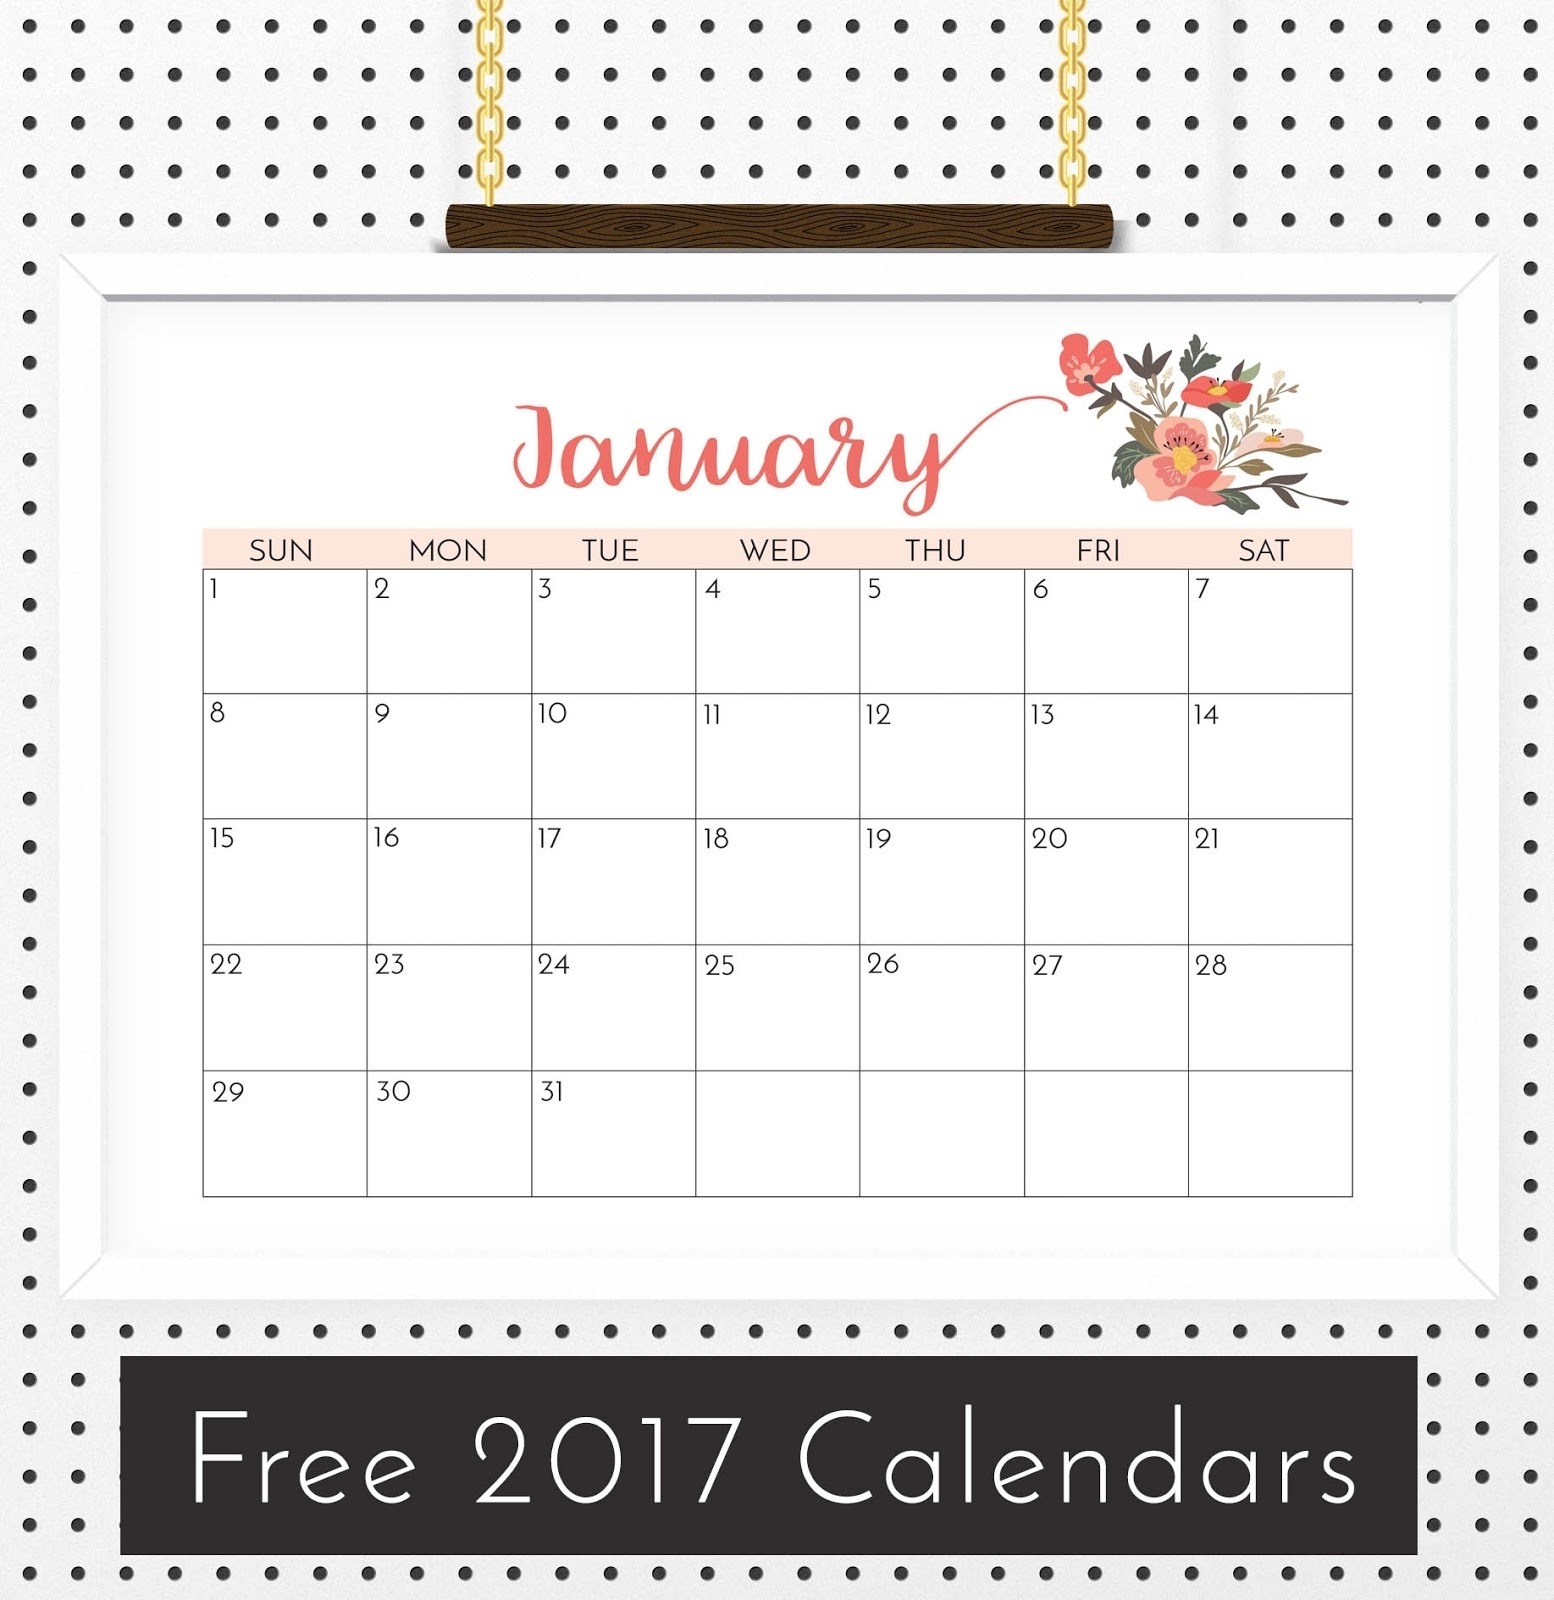 Free Floral Calendar 2017 - Crafting In The Rain